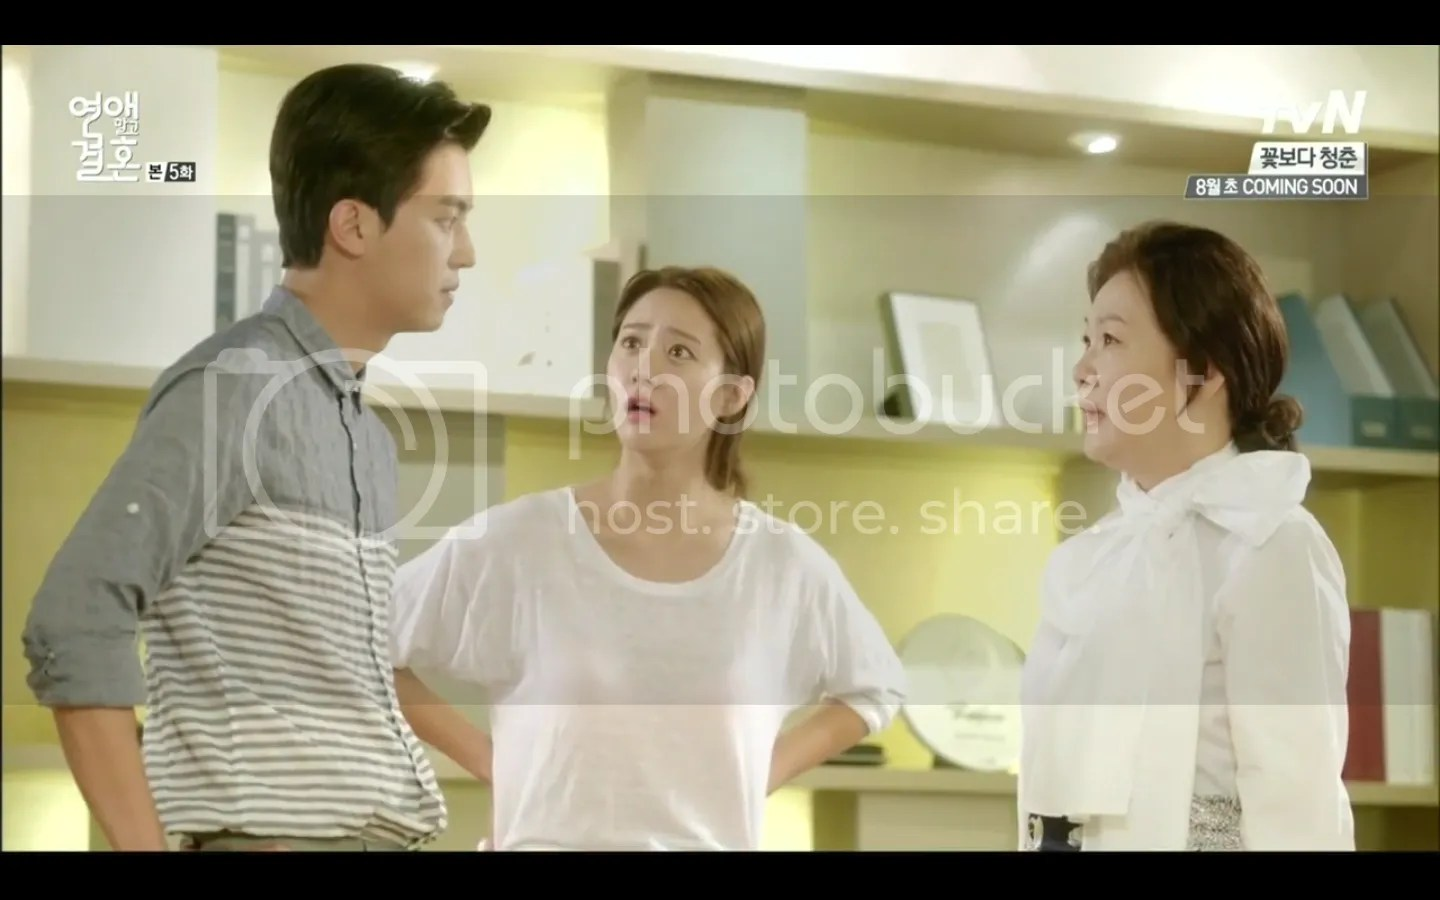 Sinopsis marriage without hookup ep 5 part 1